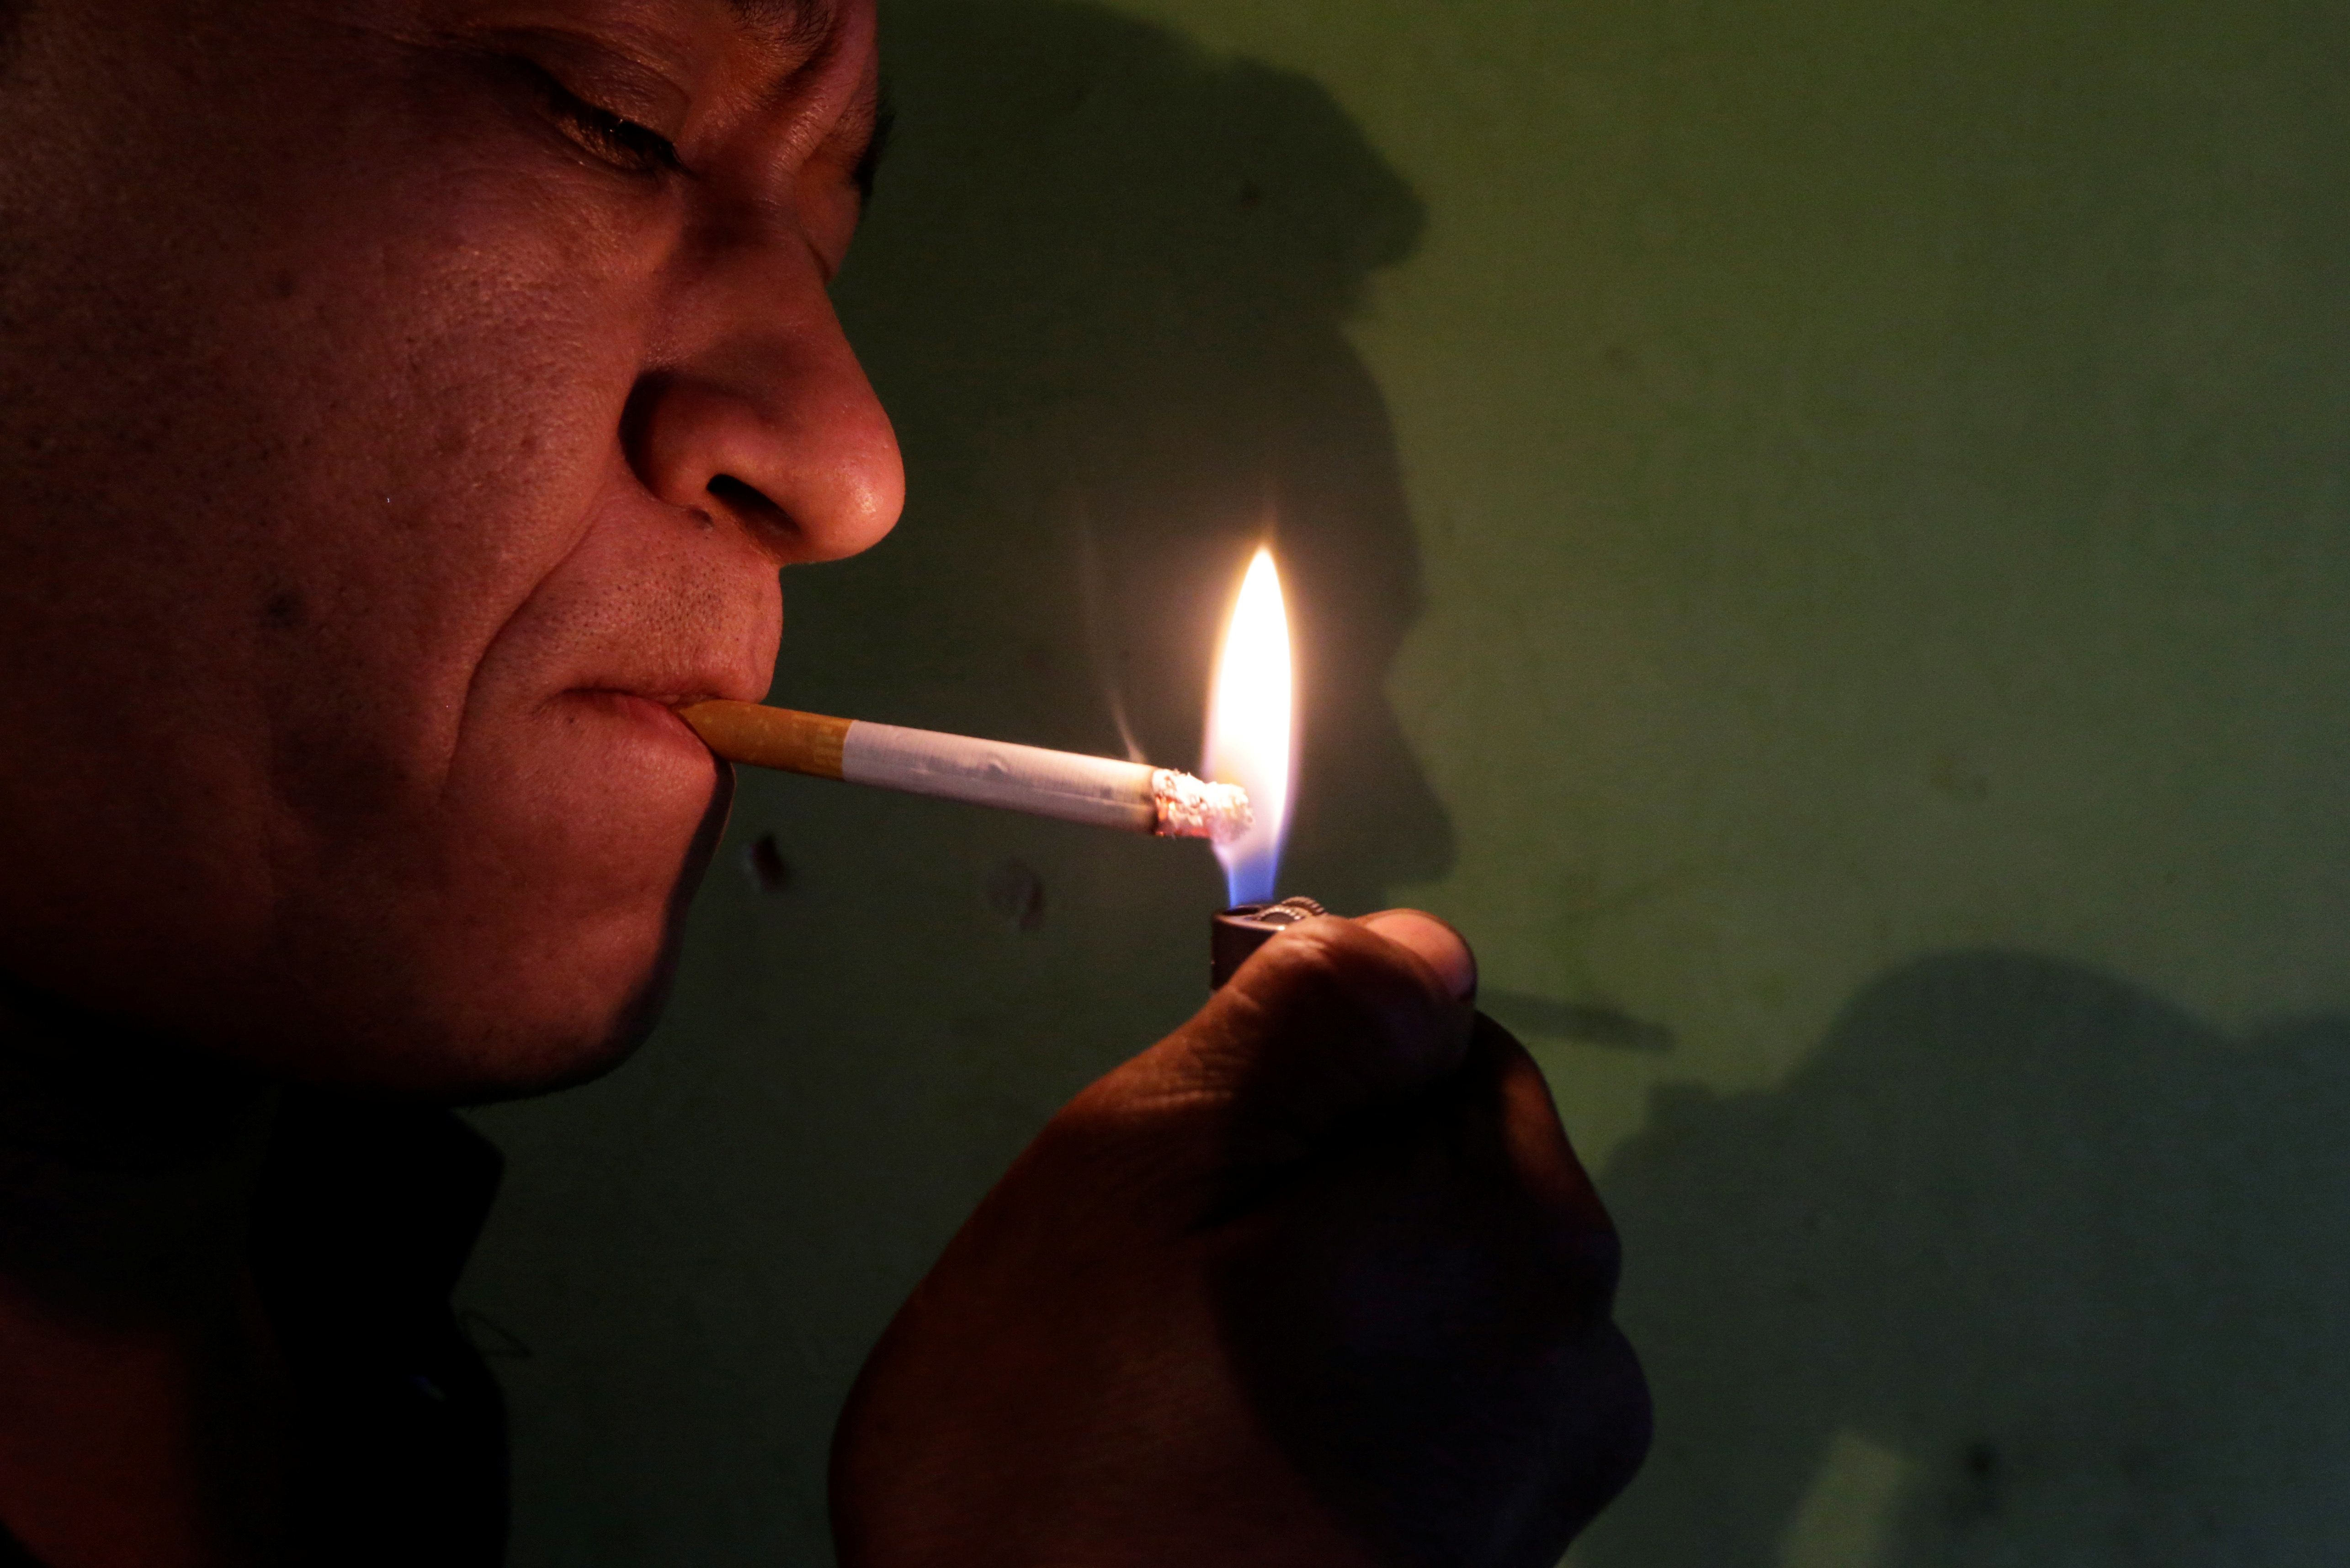 A man lights a cigarette in Asuncion, Paraguay May 11, 2017. Picture taken May 11, 2017. REUTERS/Jorge Adorno